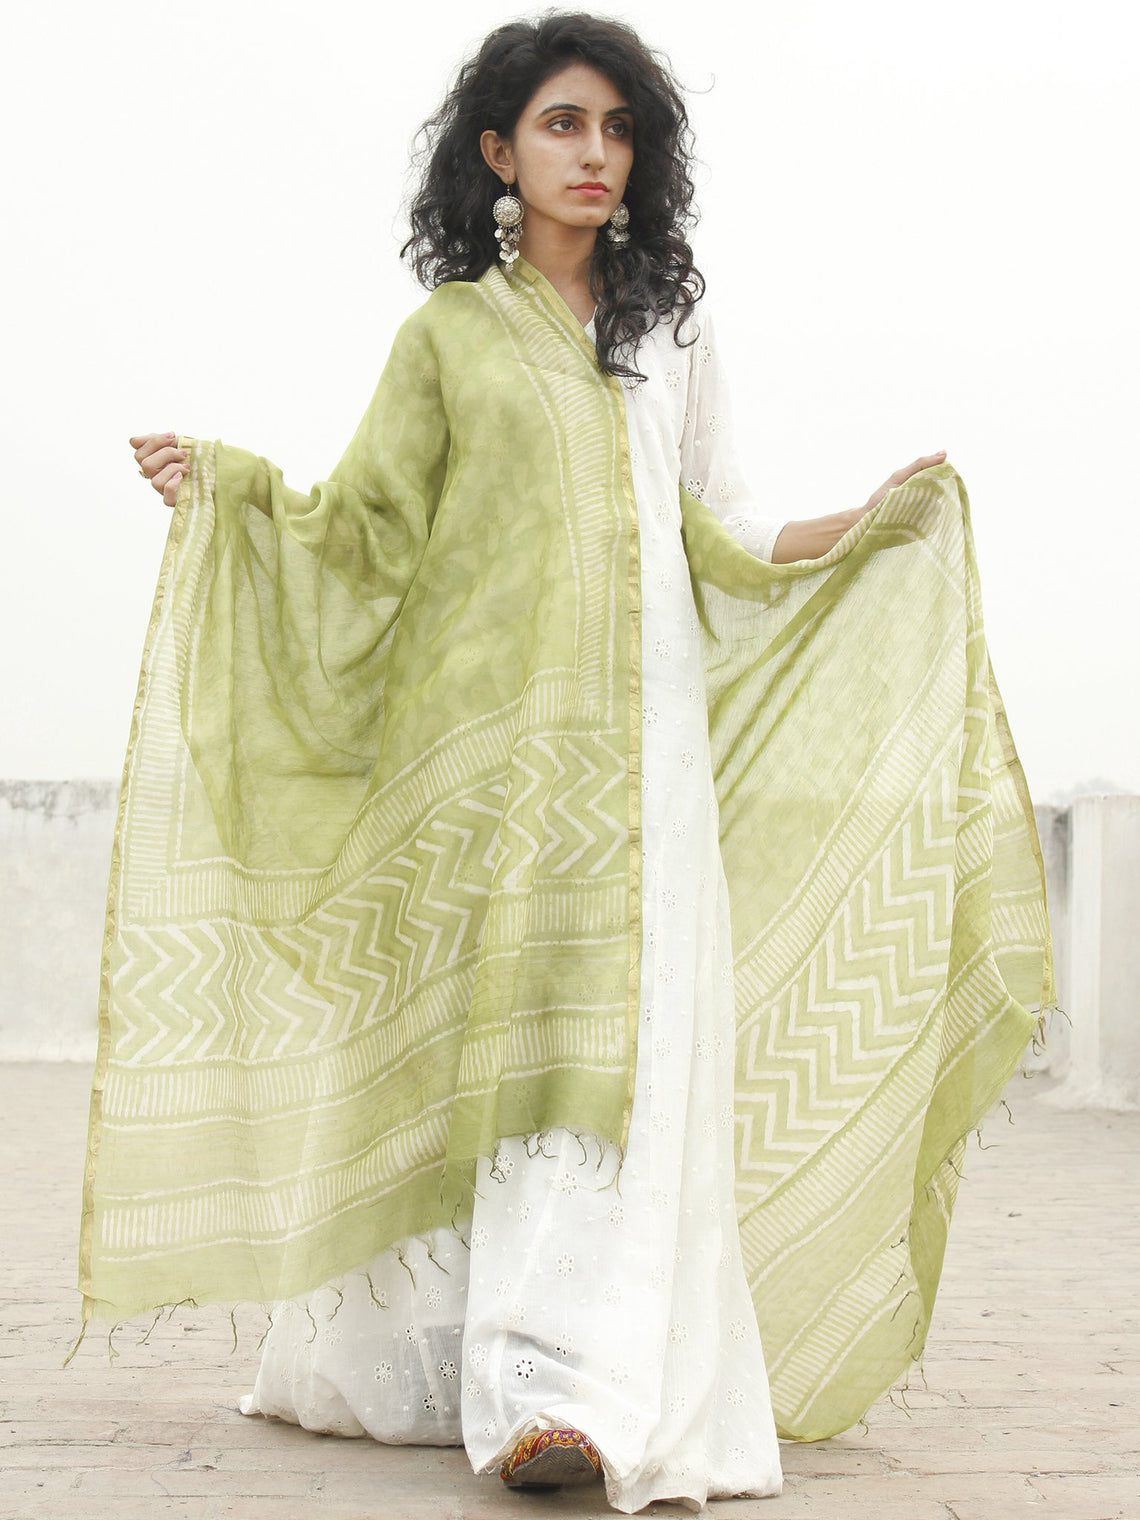 Asparagus green White Chanderi Hand Black Printed & Hand Painted Dupatta - D04170222